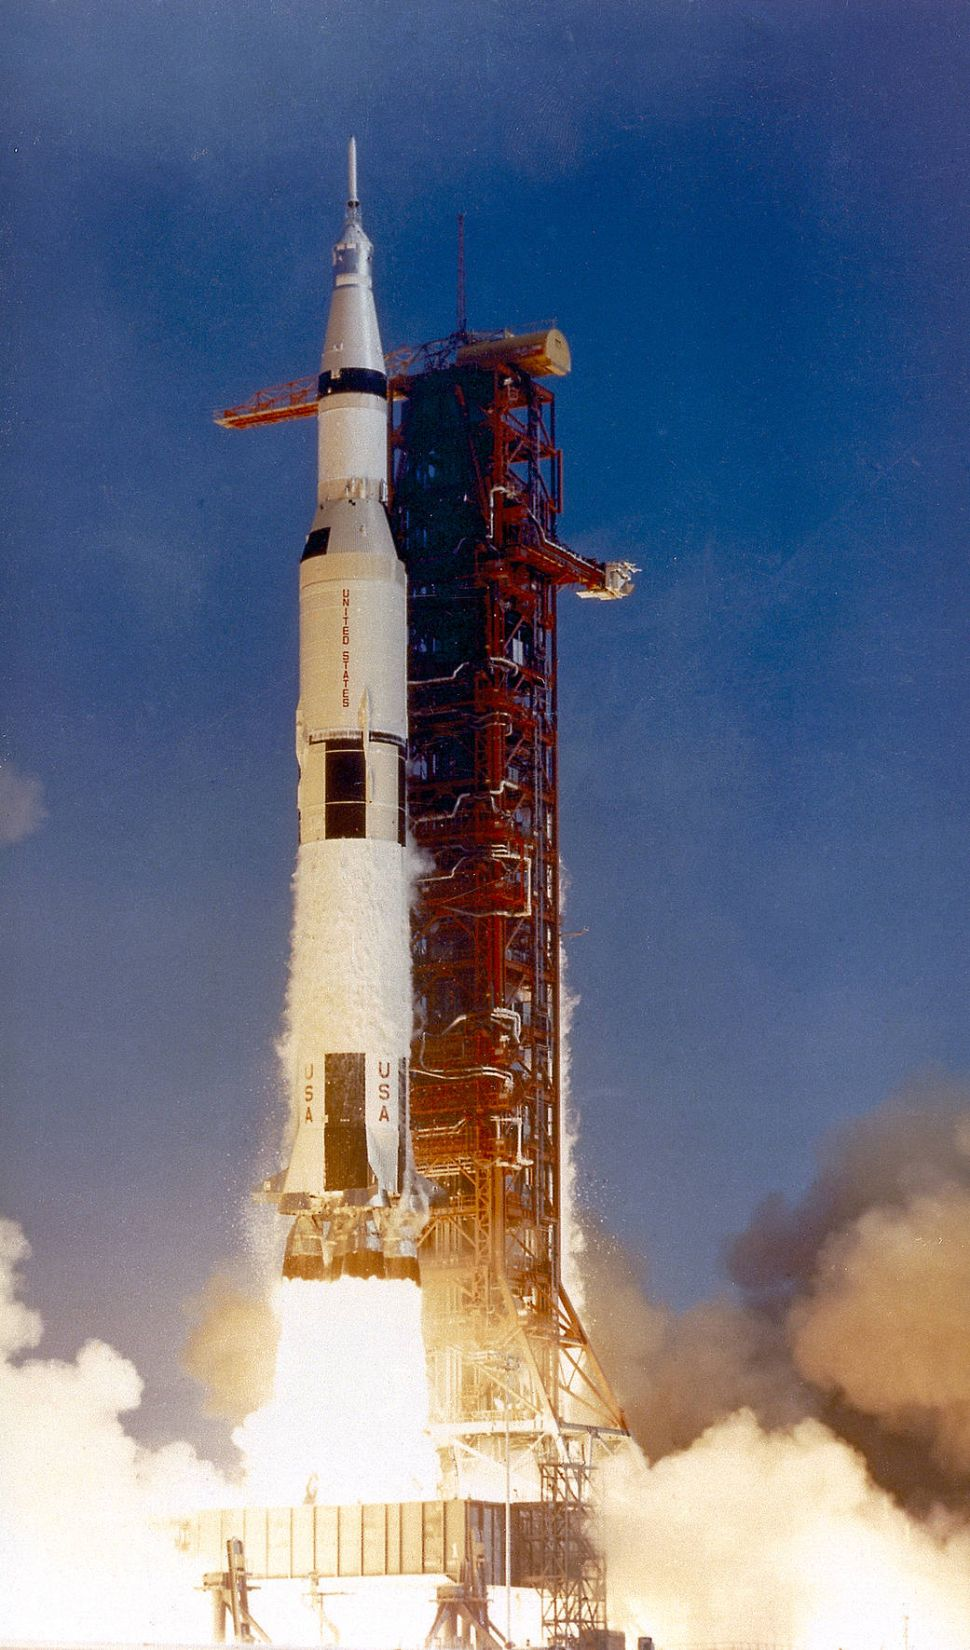 This photograph shows the Saturn V launch vehicle (SA-506) for the Apollo 11 mission liftoff at 8:32 am CDT, July 16, 1969, from launch complex 39A at the Kennedy Space Center.